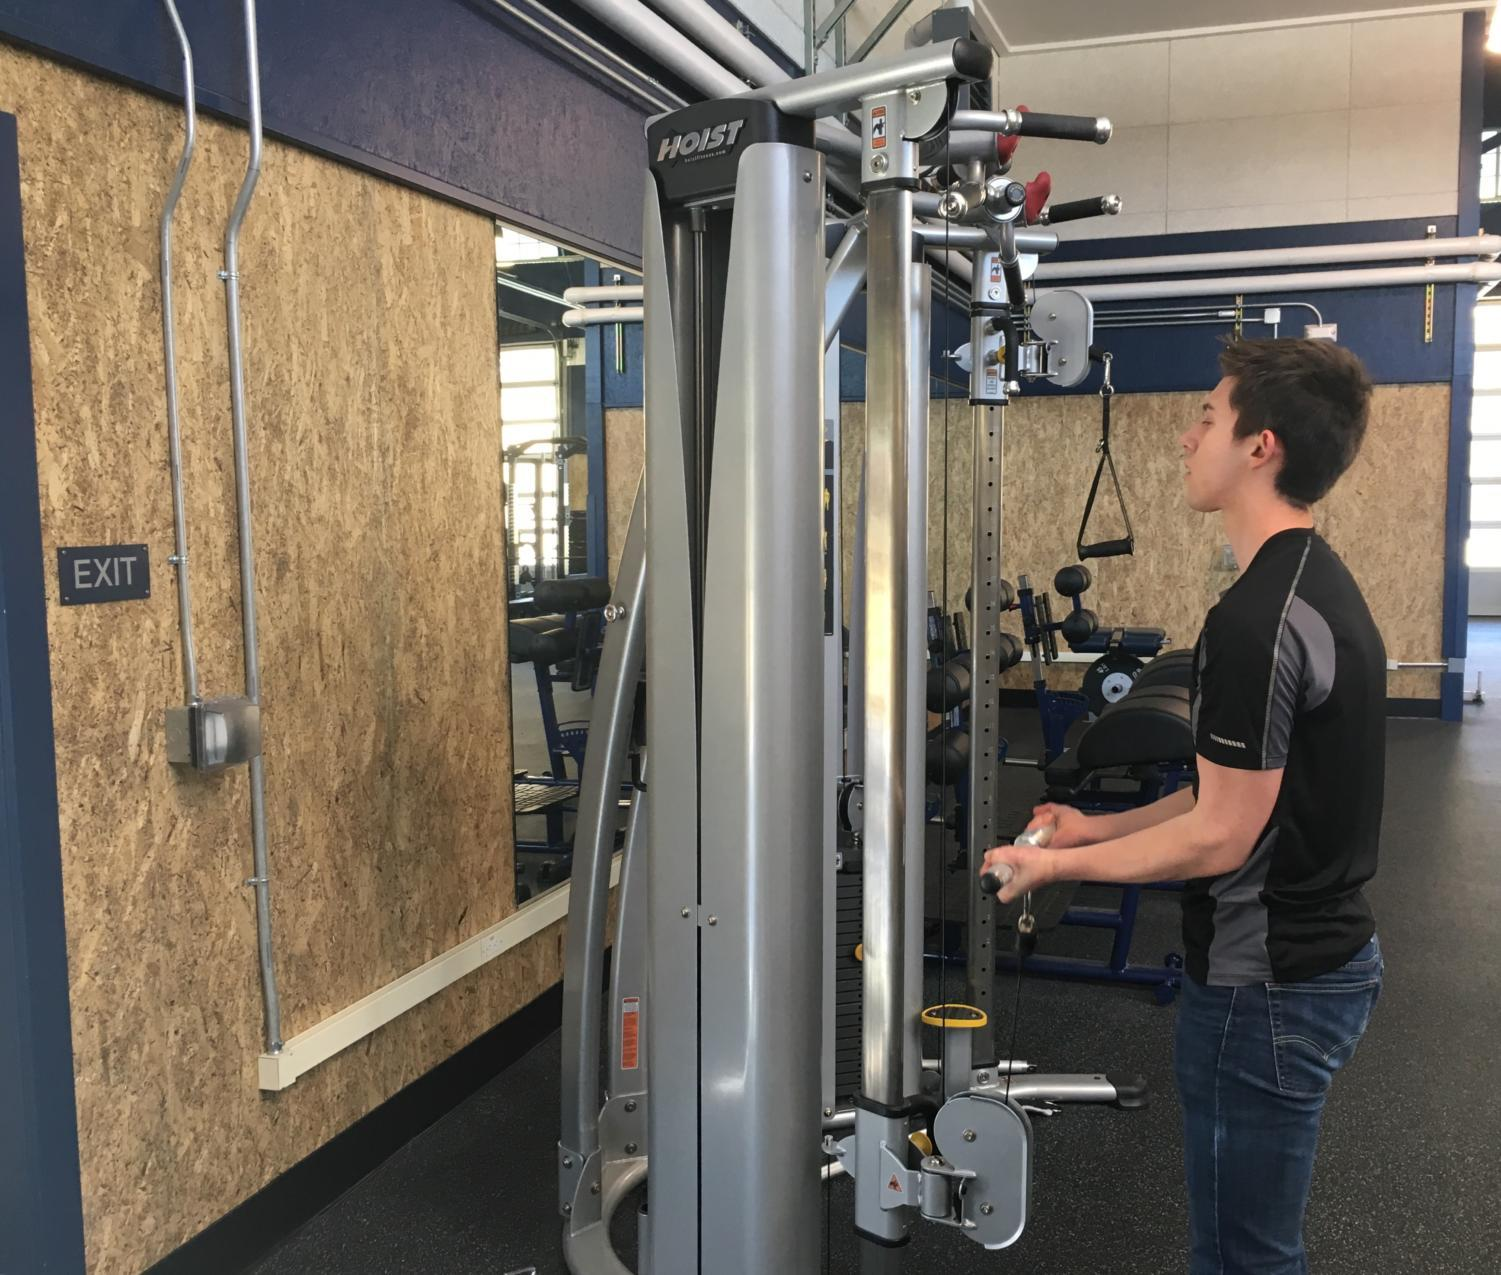 Ethan Stroh, a senior in Weight Training Club, works out in the Carlmont weight room.